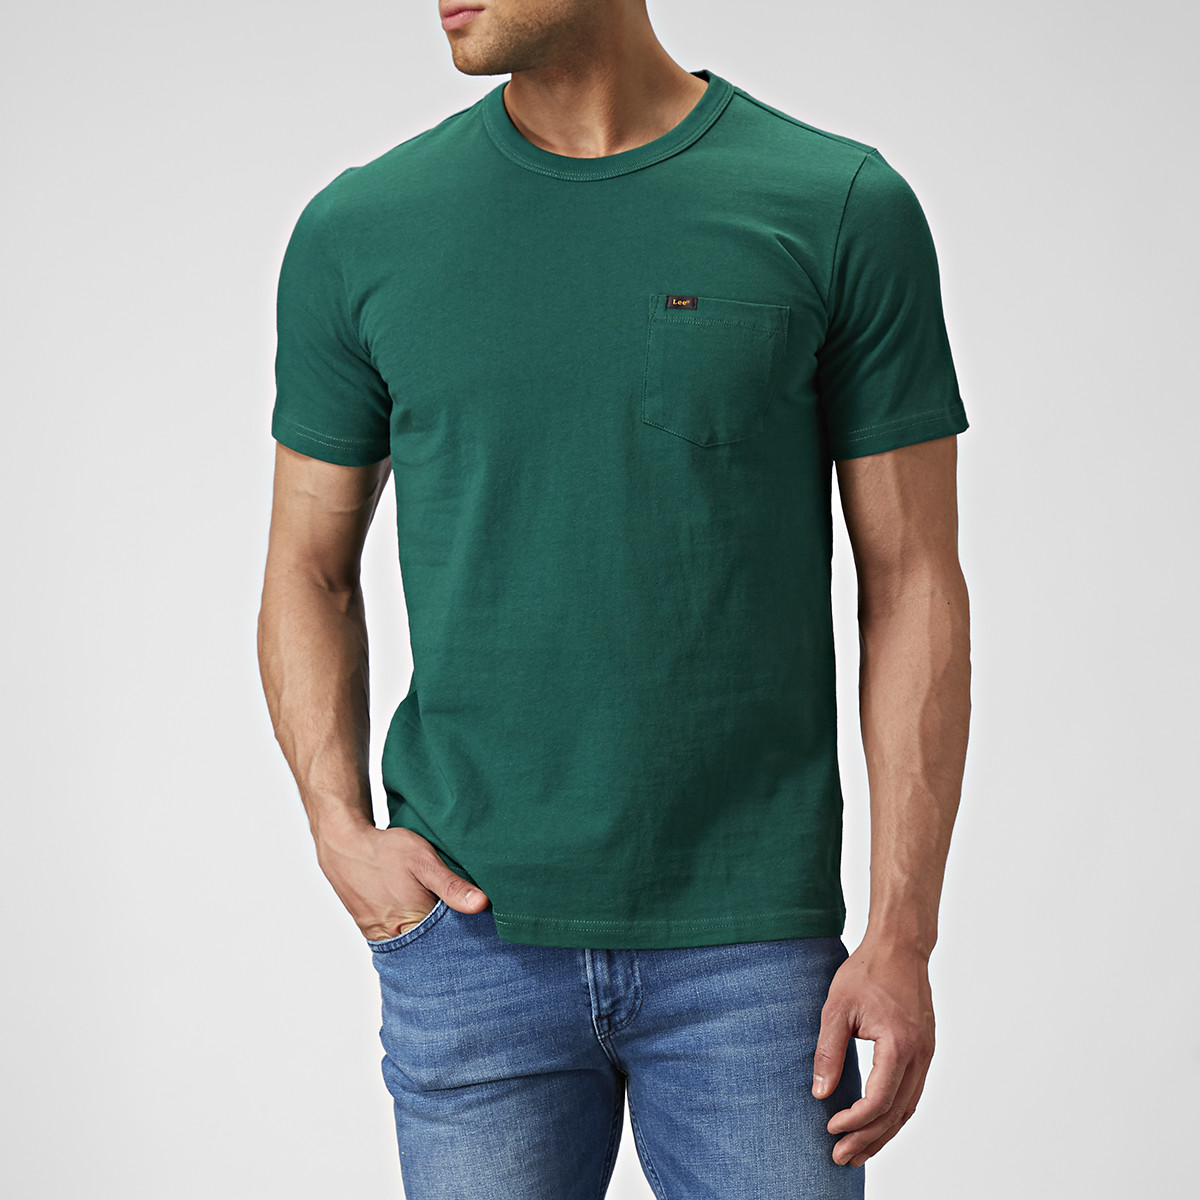 T-shirt Pocket Grön | Lee | Brothers.se